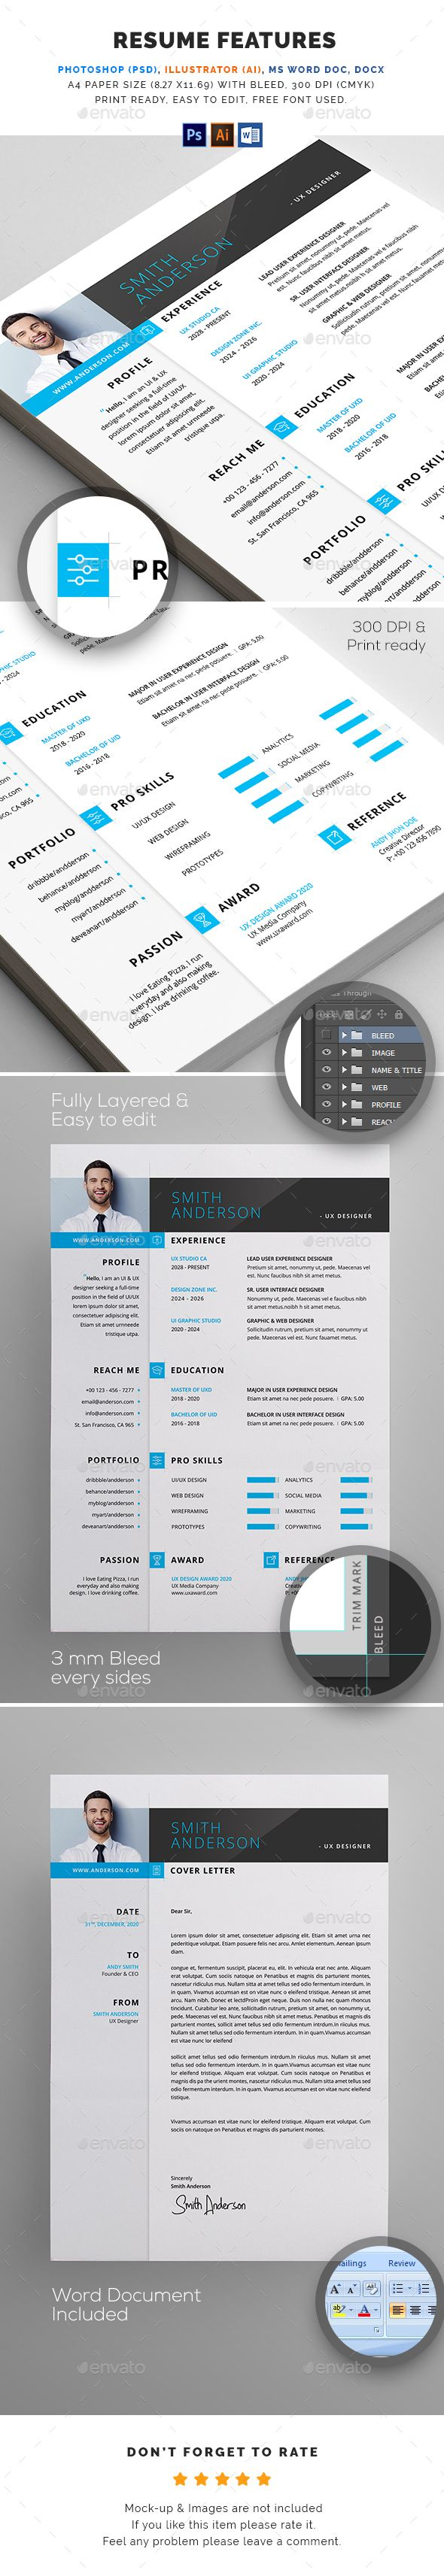 Resume FEATURES:      Easy customizable and editable     300 DPI CMYK Print Ready!     A4 size 8.27 X 11.69 (with Bleed) settings     100% Layered and Full Editable     02 PSD Files included     02 Ai Files included     04 Word Files (DOC & DOCX) included     Help Guide Included     Print Ready Format     Images are not included in the download.  FONT:      Open Sans